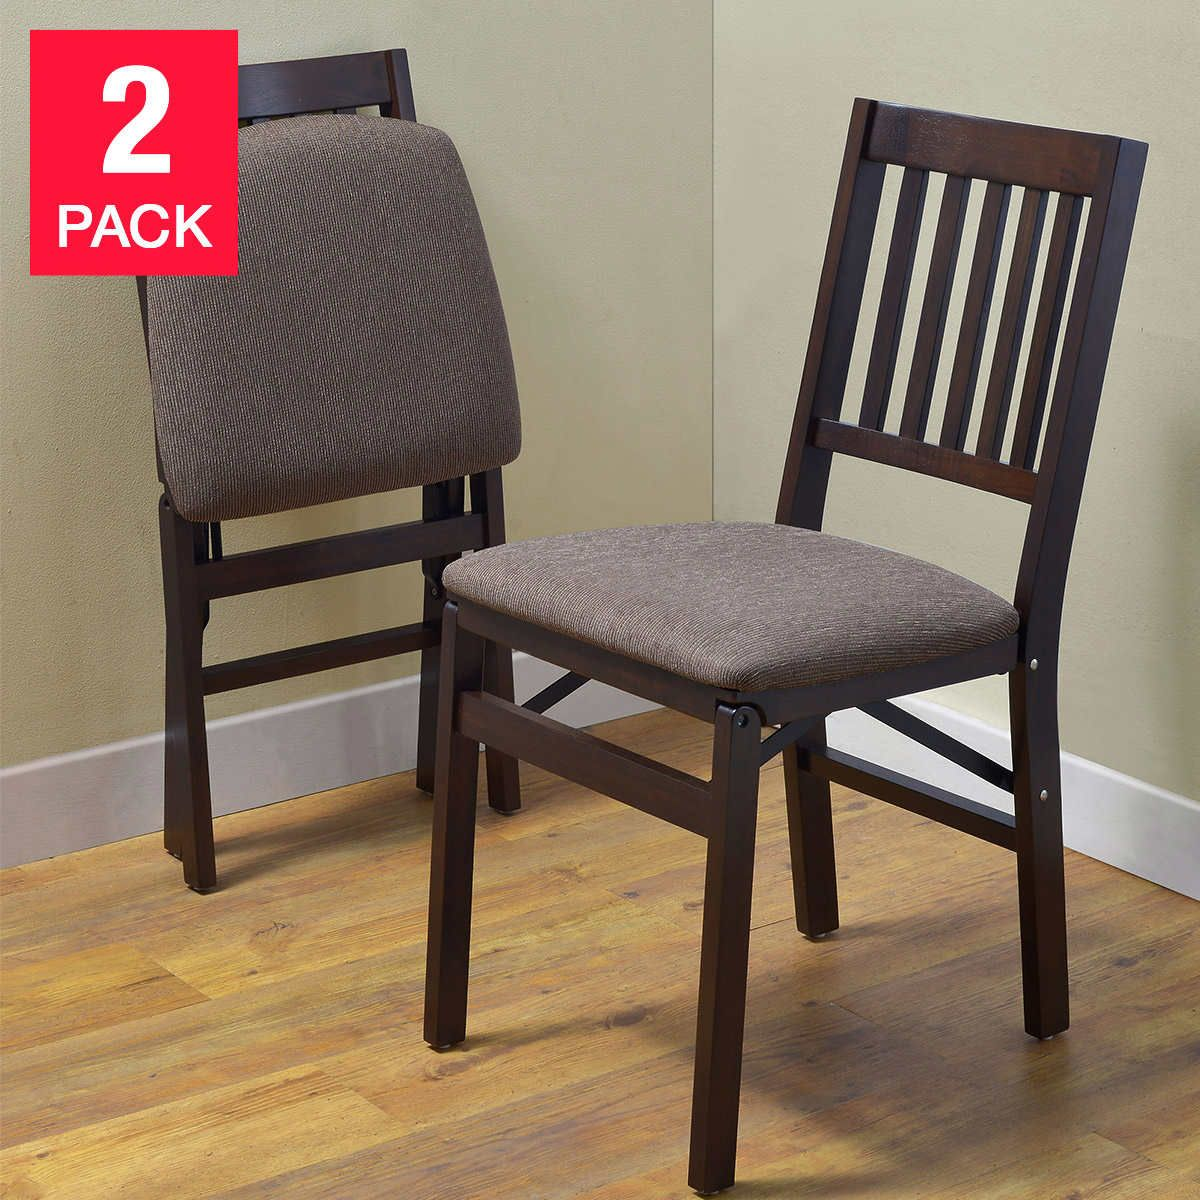 Stakmore Solid Wood Folding Chair, Espresso Finish, 2pk